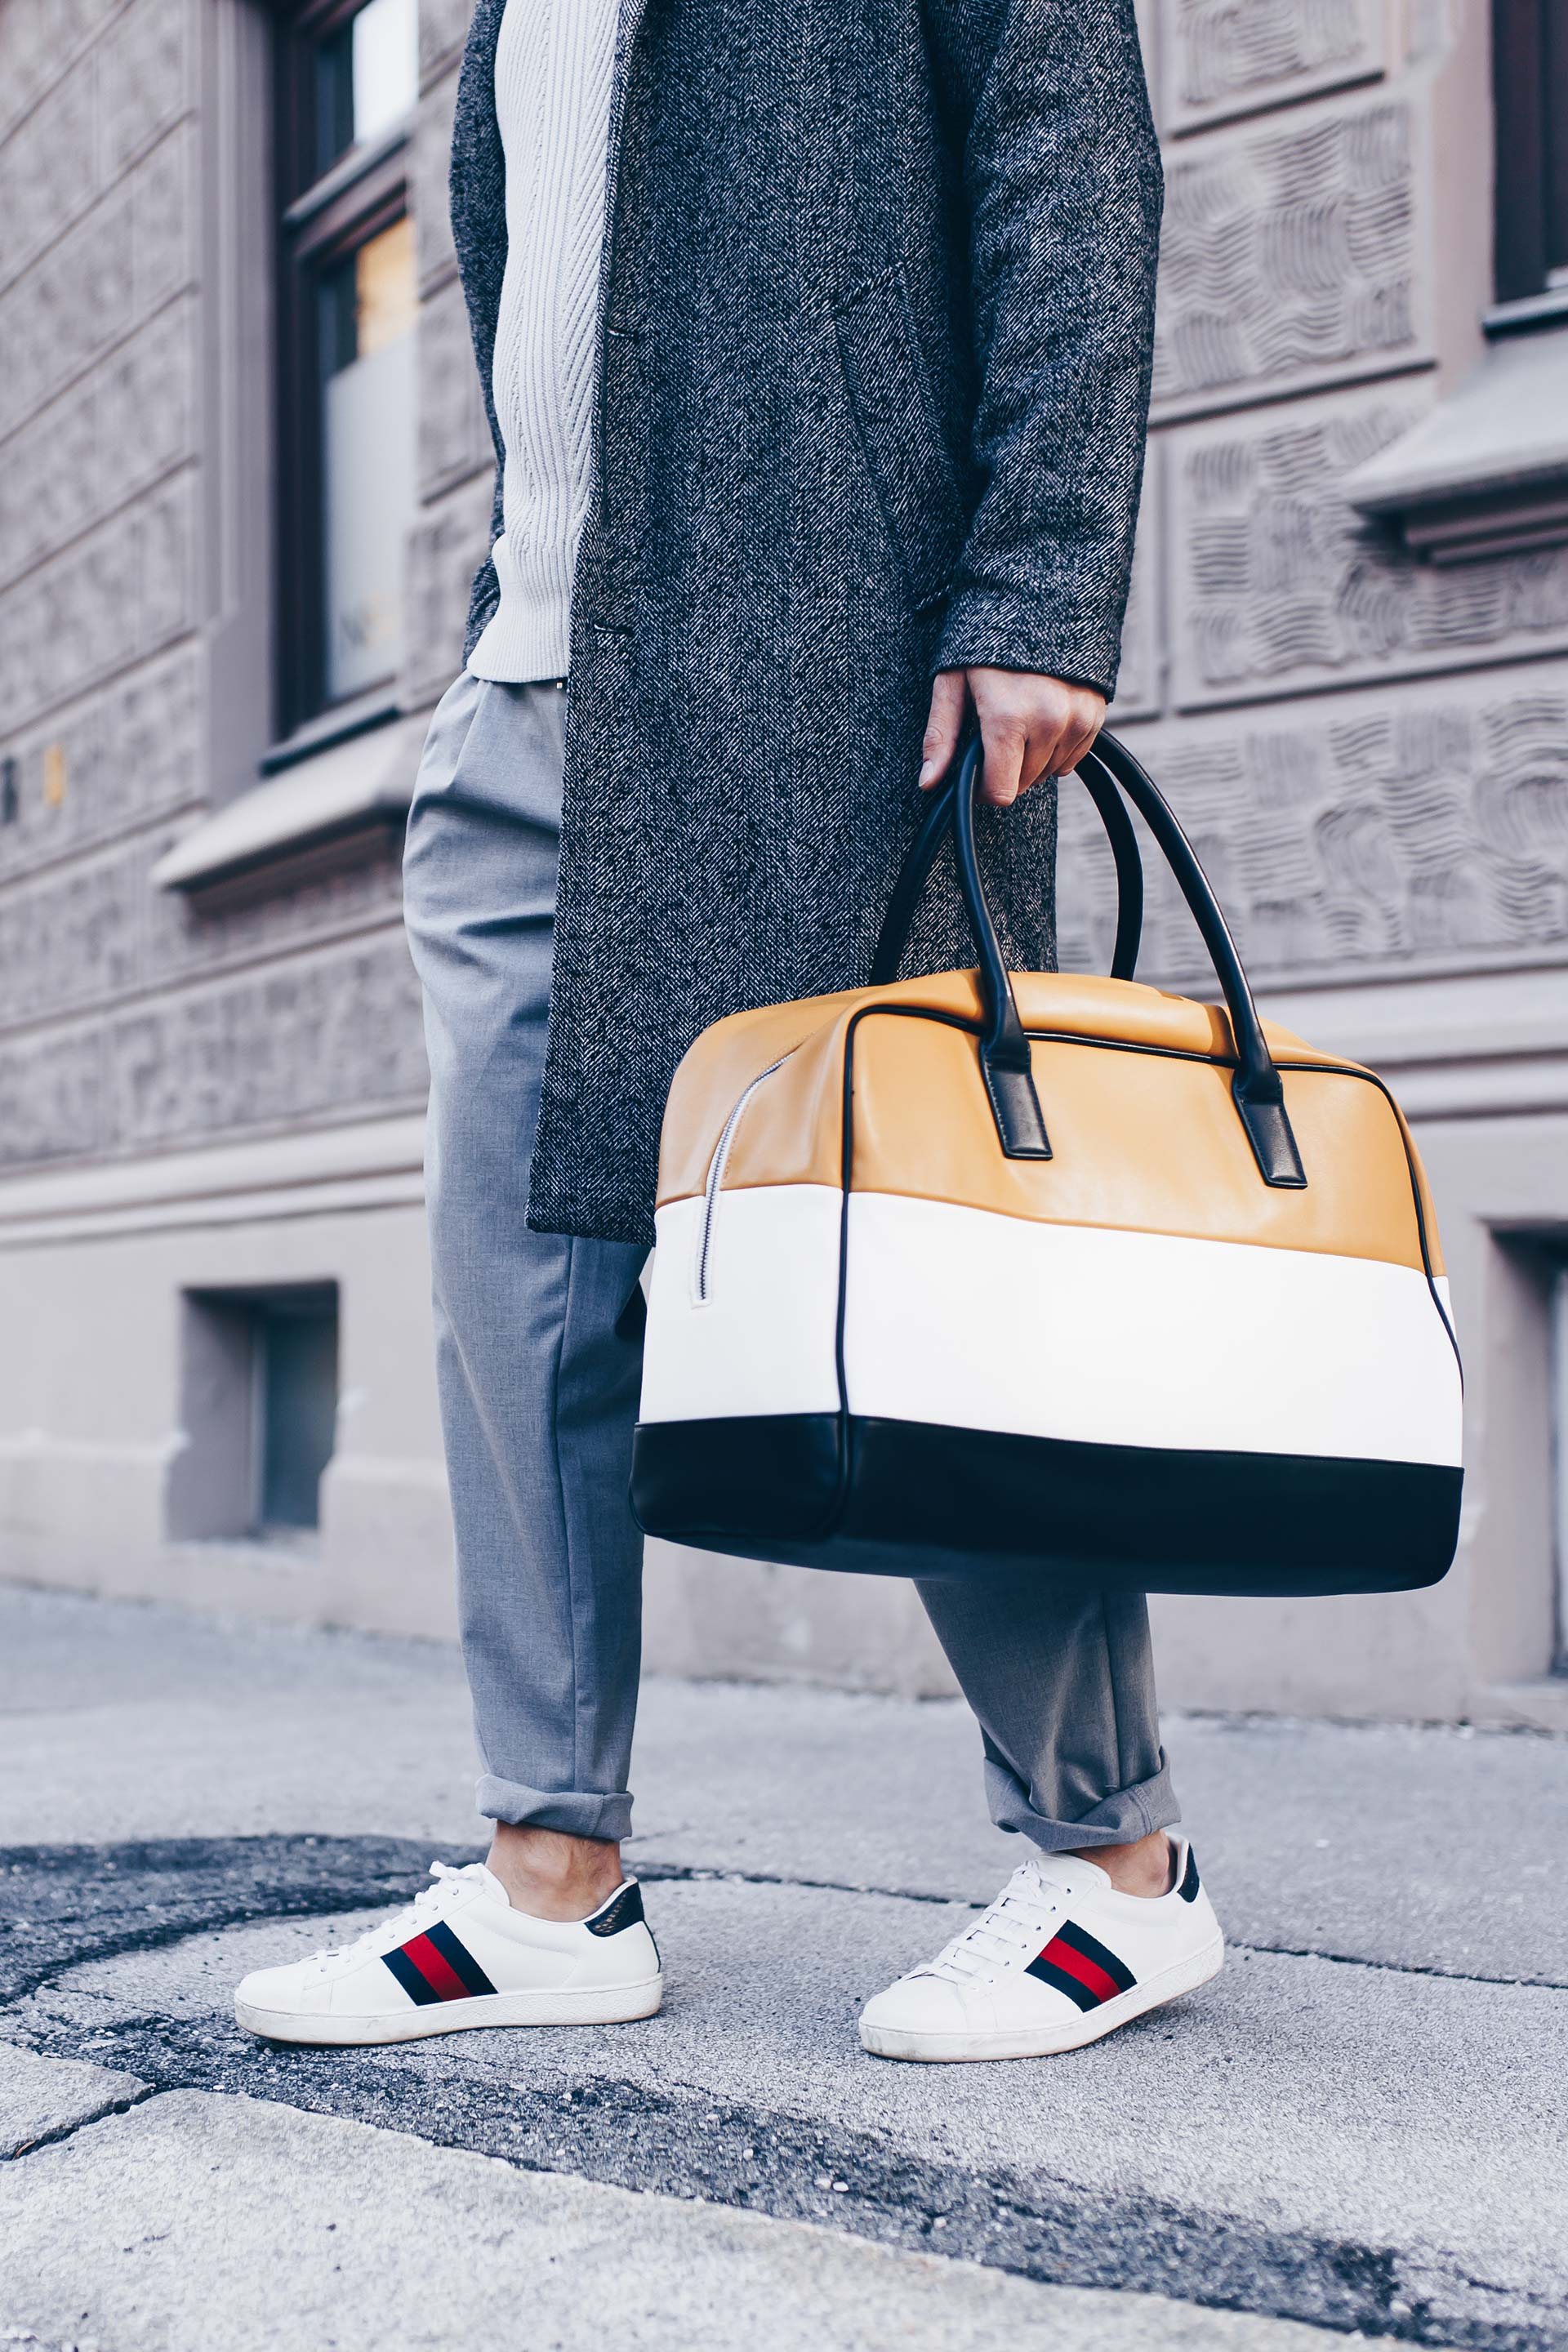 Glencheck Blazer kombinieren, Pärchen Outfit, Streetstyle, Basic Casual Outfits, Chloe Sneakers, Gucci Ace Sneakers, Fashion Blog, Mode Magazin, Mode Tipps, www.whoismocca.com